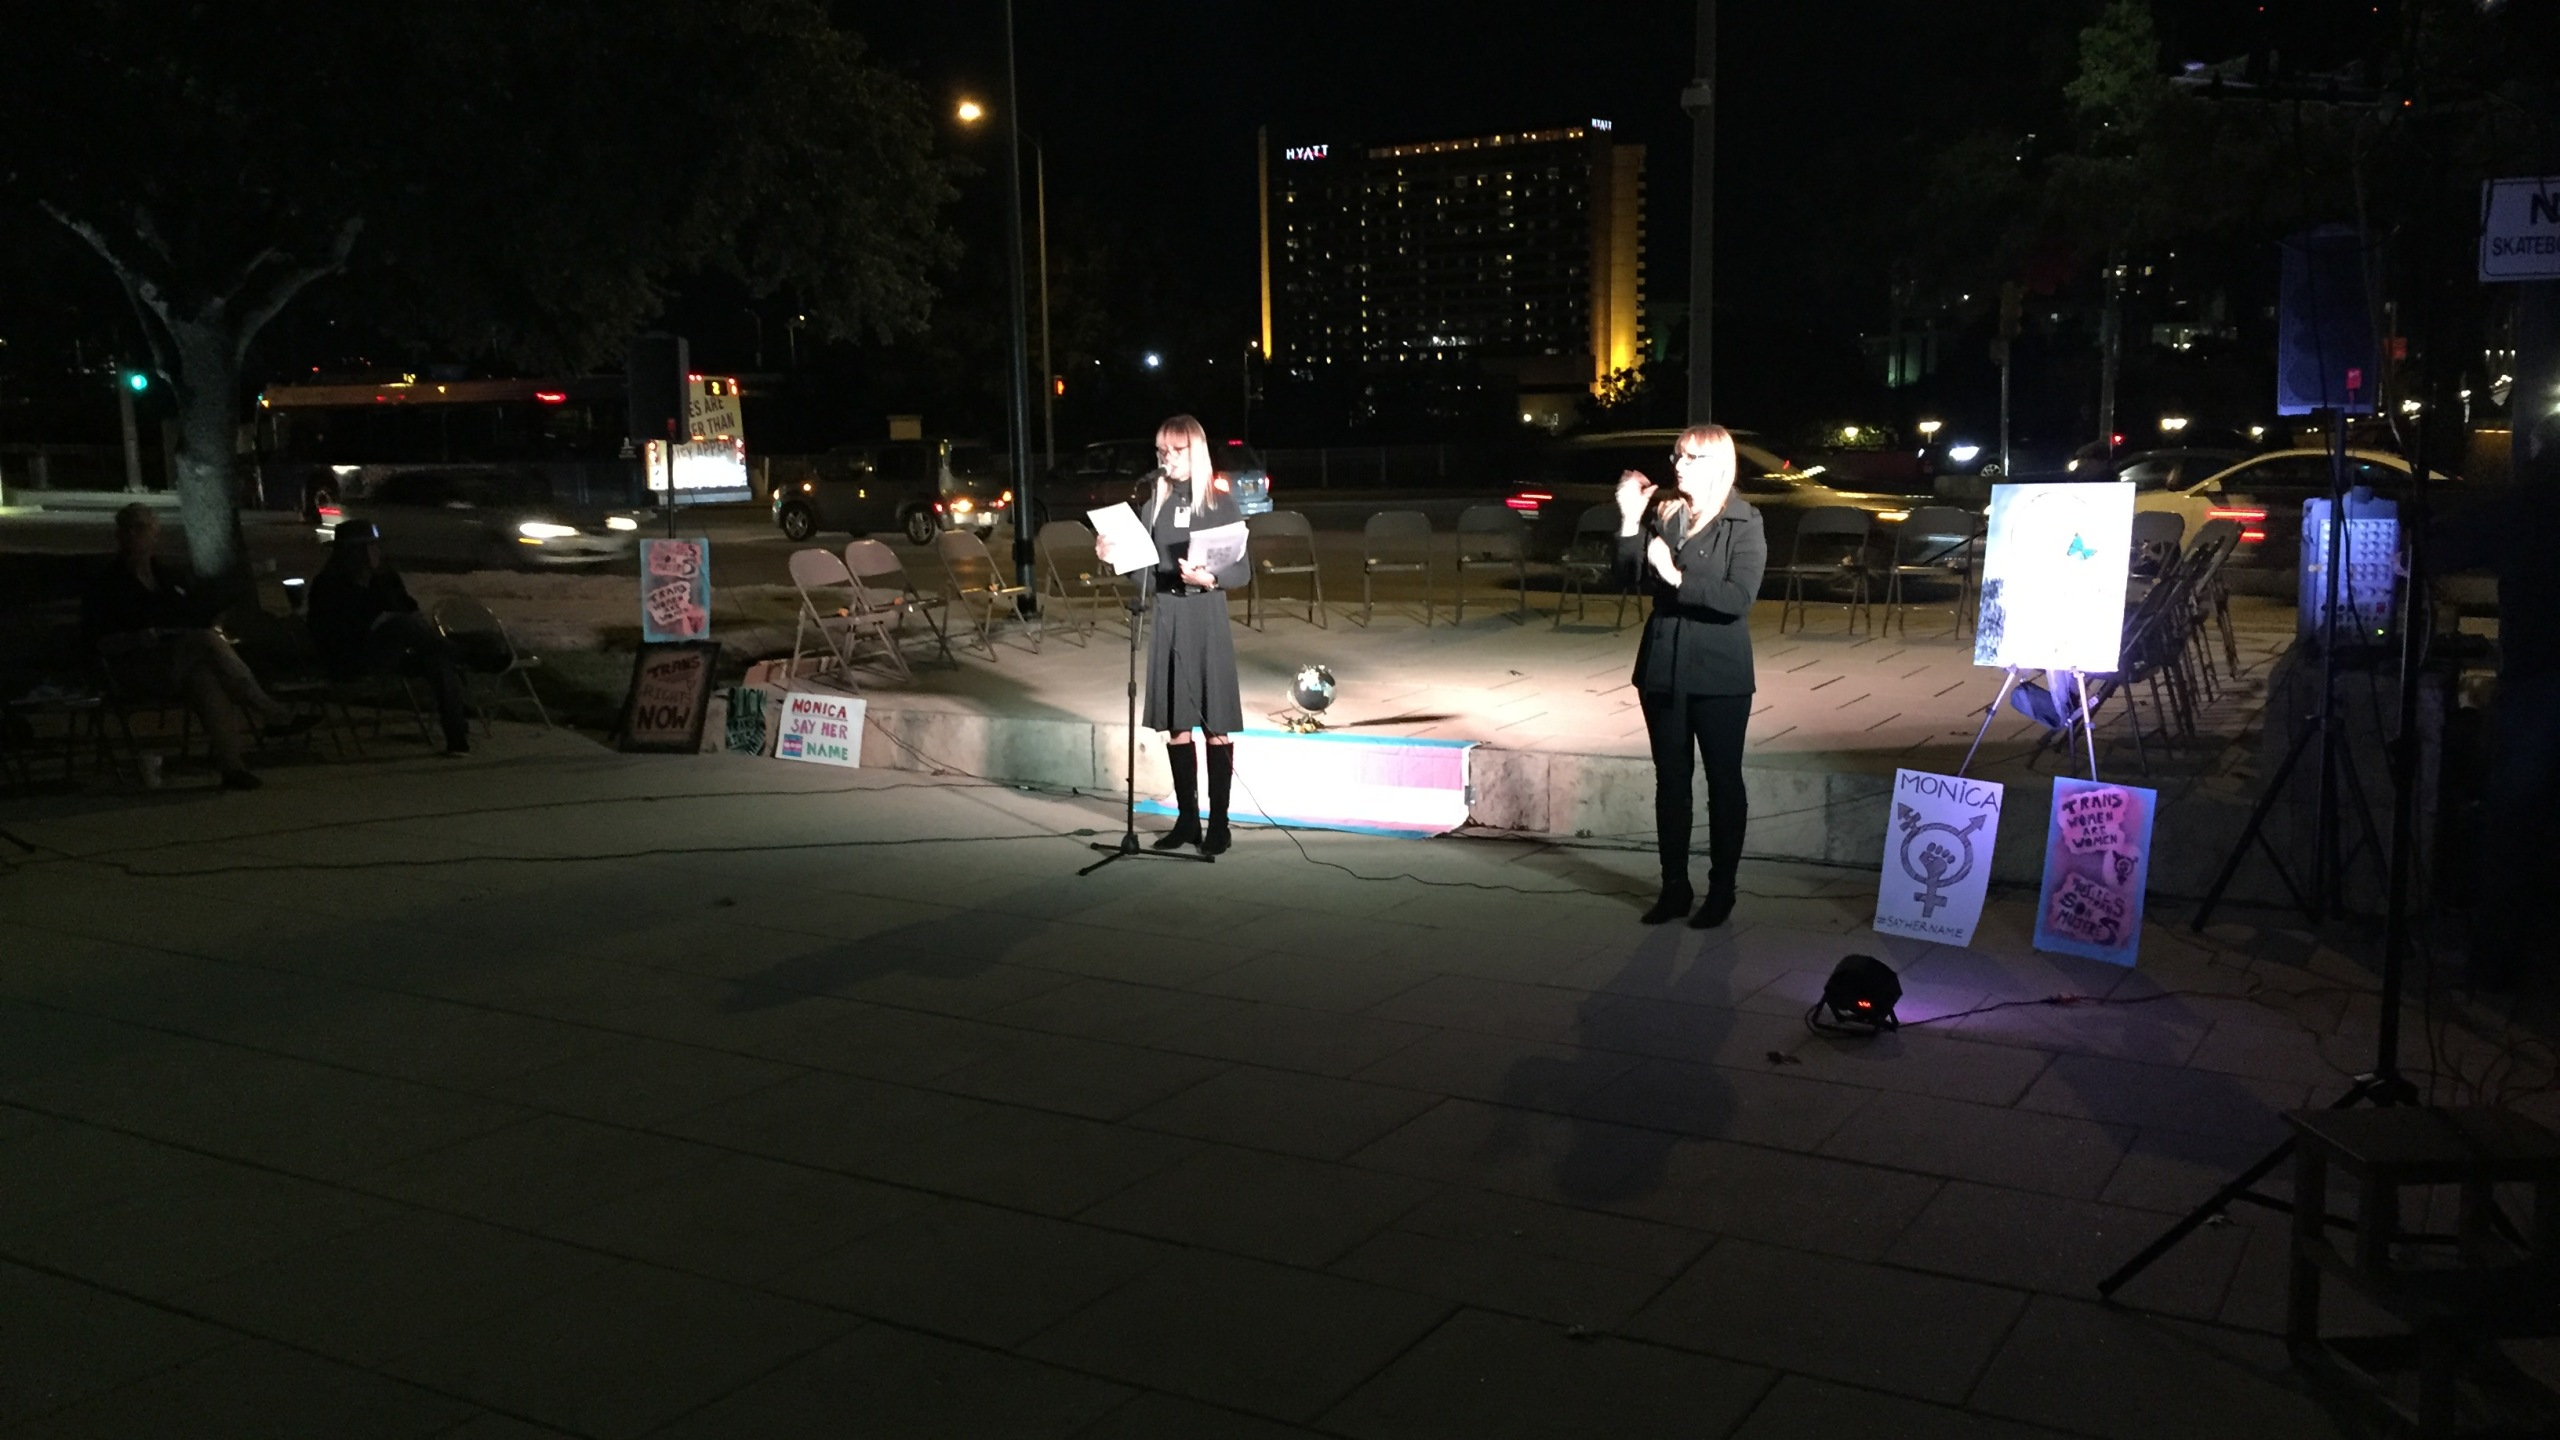 Dozens gathered for the Transgender Day of Remembrance vigil at Austin City Hall._377083